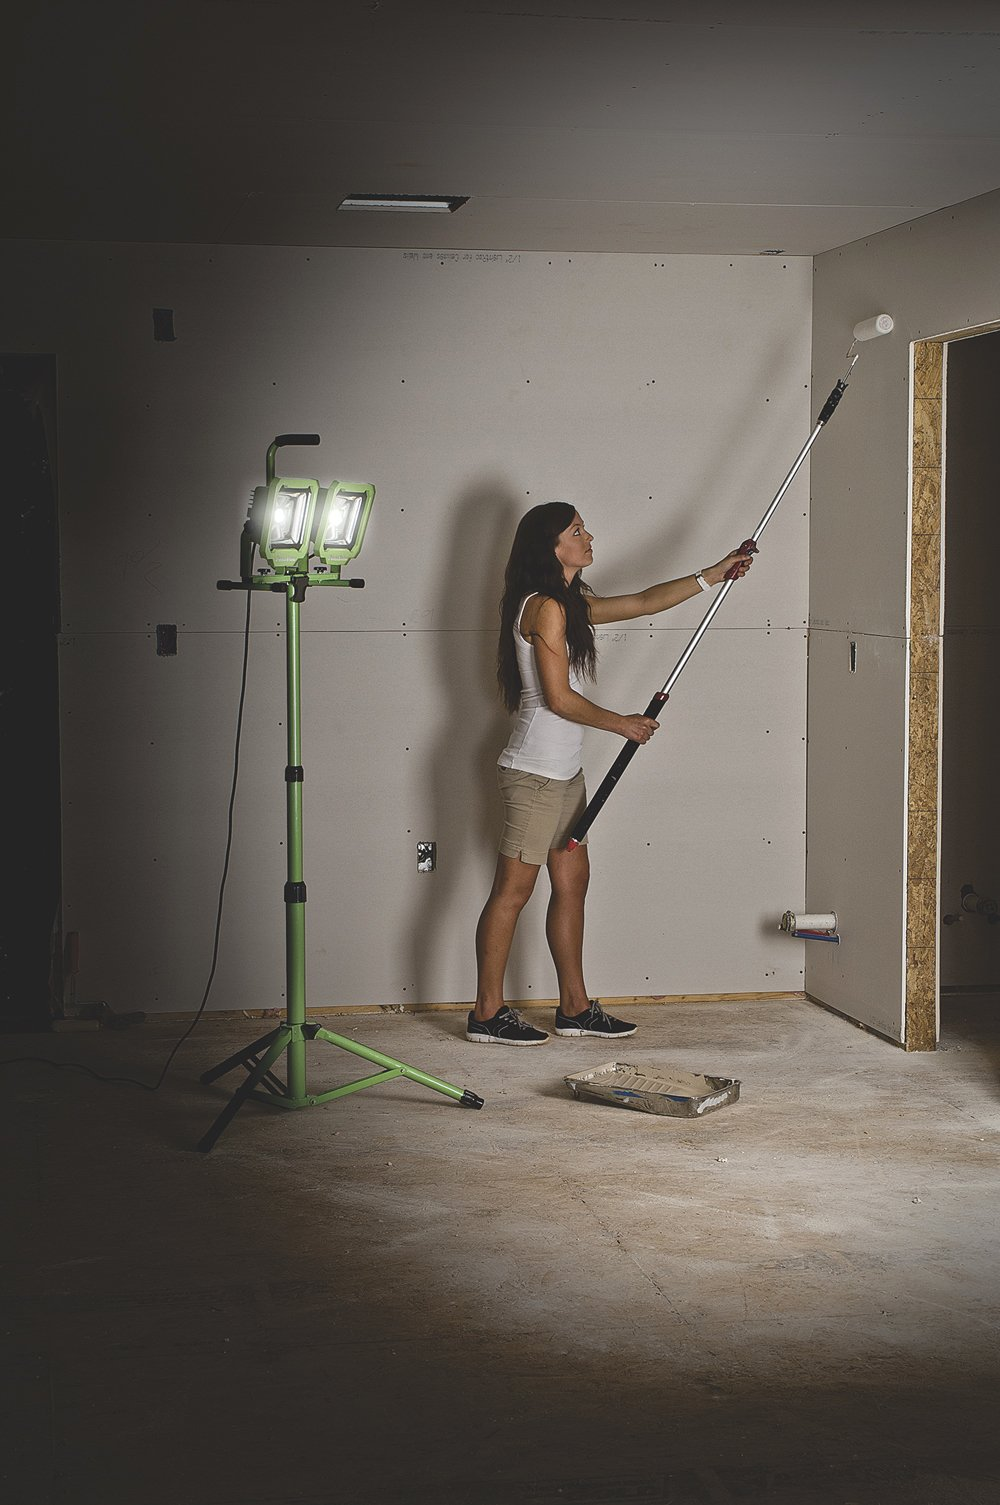 PowerSmith PWL2160TS Dual-Head 60W 6000 Lumen LED Work Light with Detachable Metal Lamp Housing and Metal Telescoping Tripod (9Ft Power Cord) by PowerSmith (Image #3)